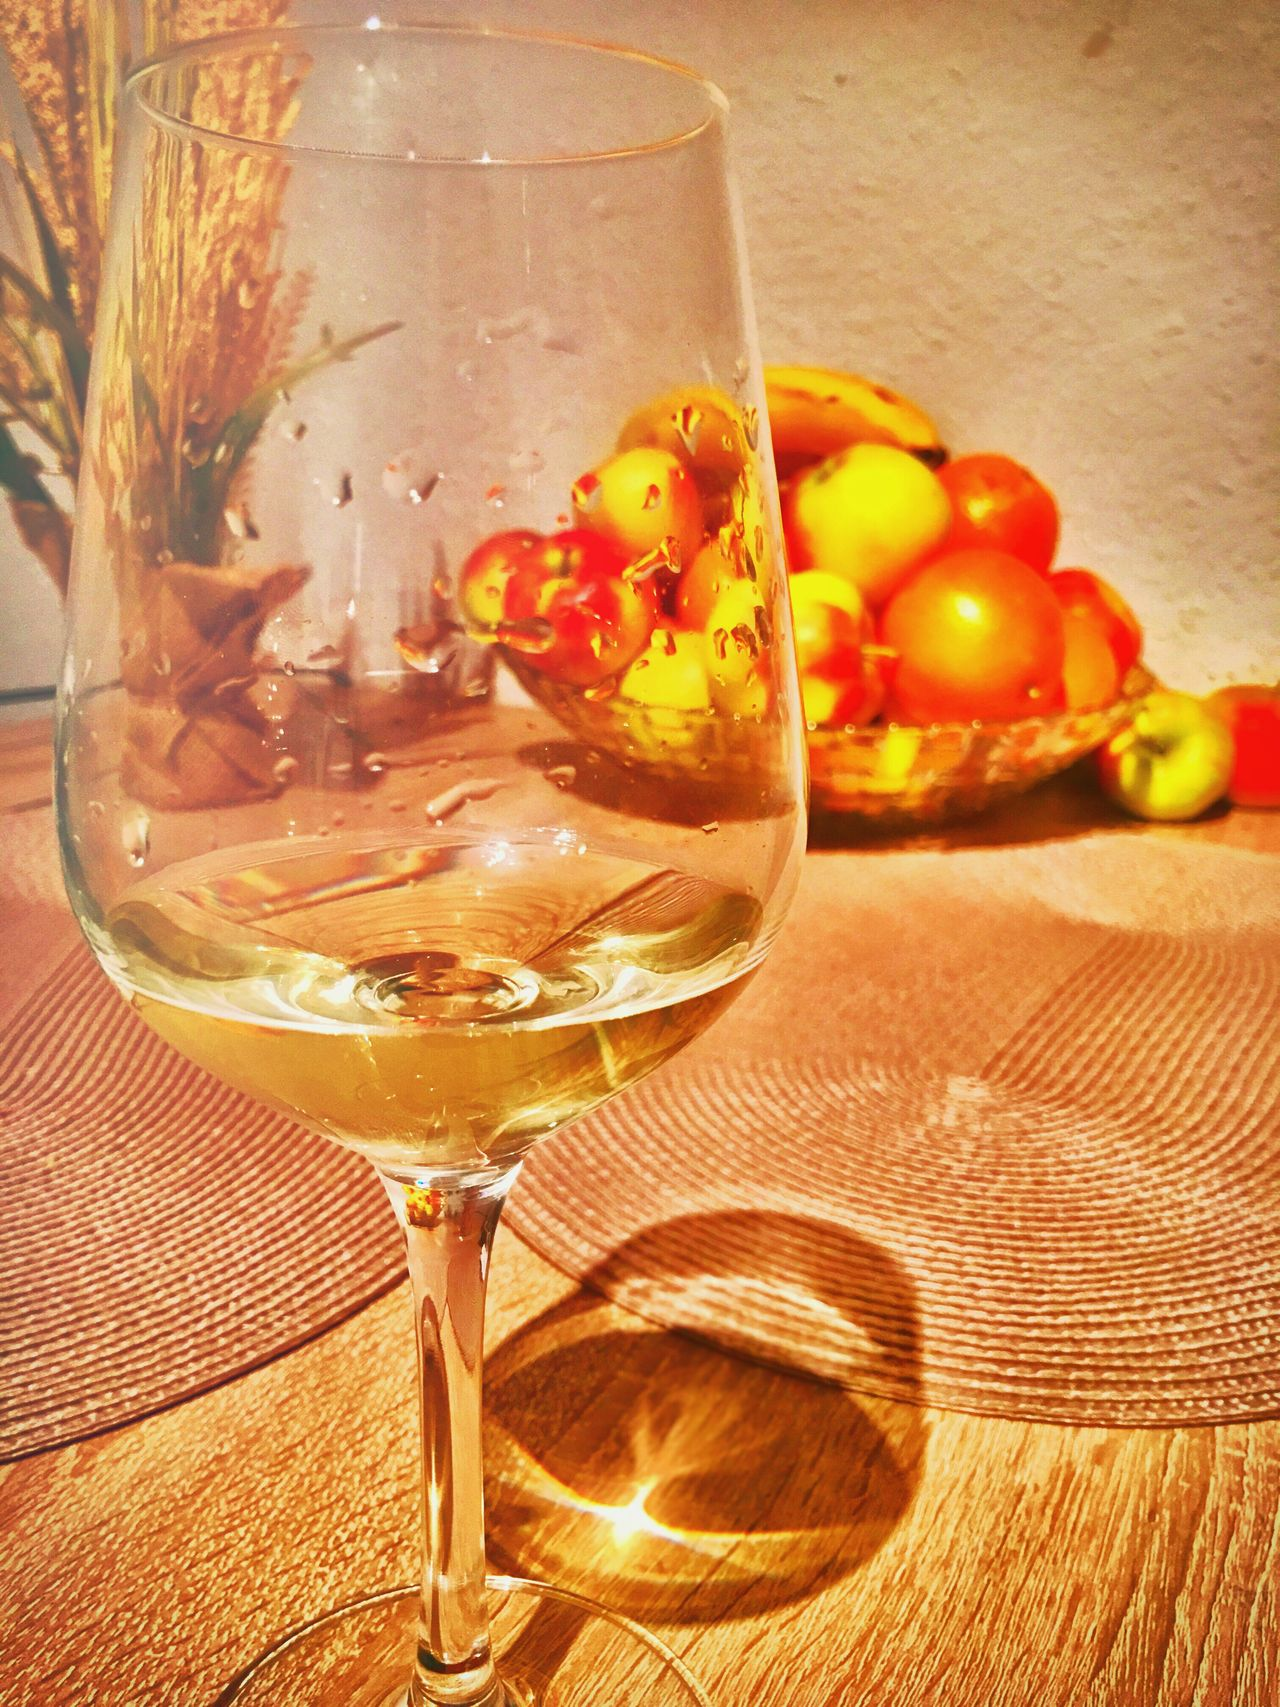 Wine Food And Drink Alcohol Table Wineglass Drinking Glass No People Close-up Indoors  Freshness Ready-to-eat Day Wine Tasting Whitewine Evening Apple Banana Germany Hagen Holiday Glass Orange Wall Tabletop Red